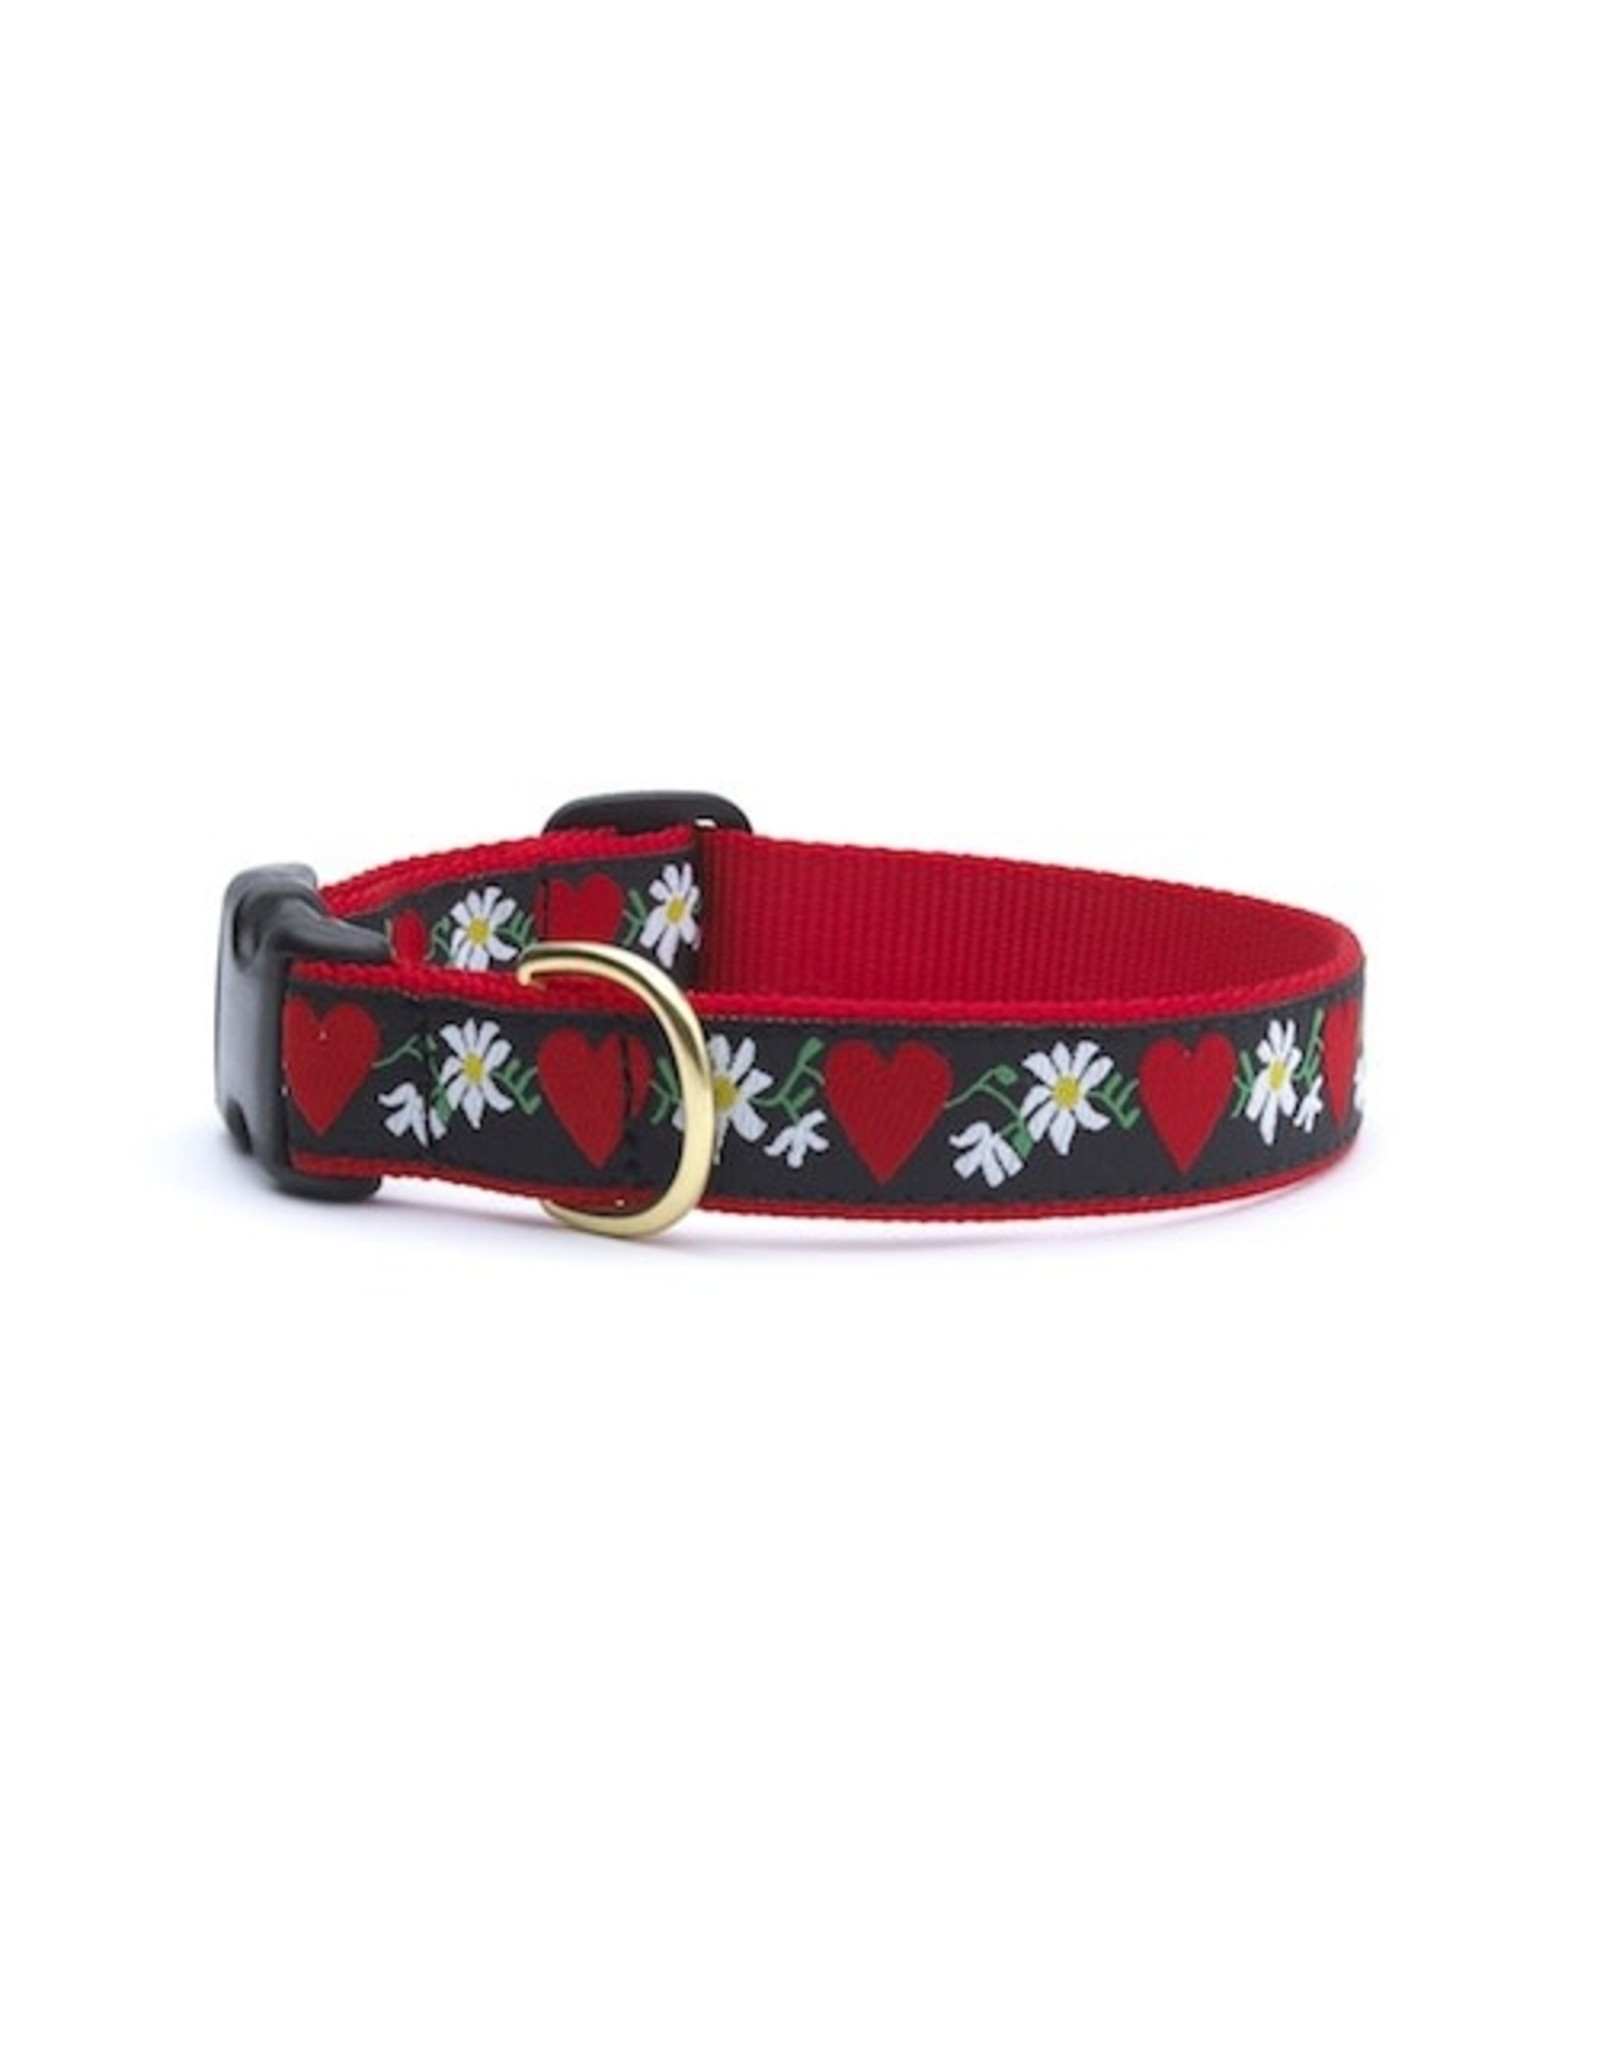 Up Country Hearts & Flowers Collar: Narrow, S